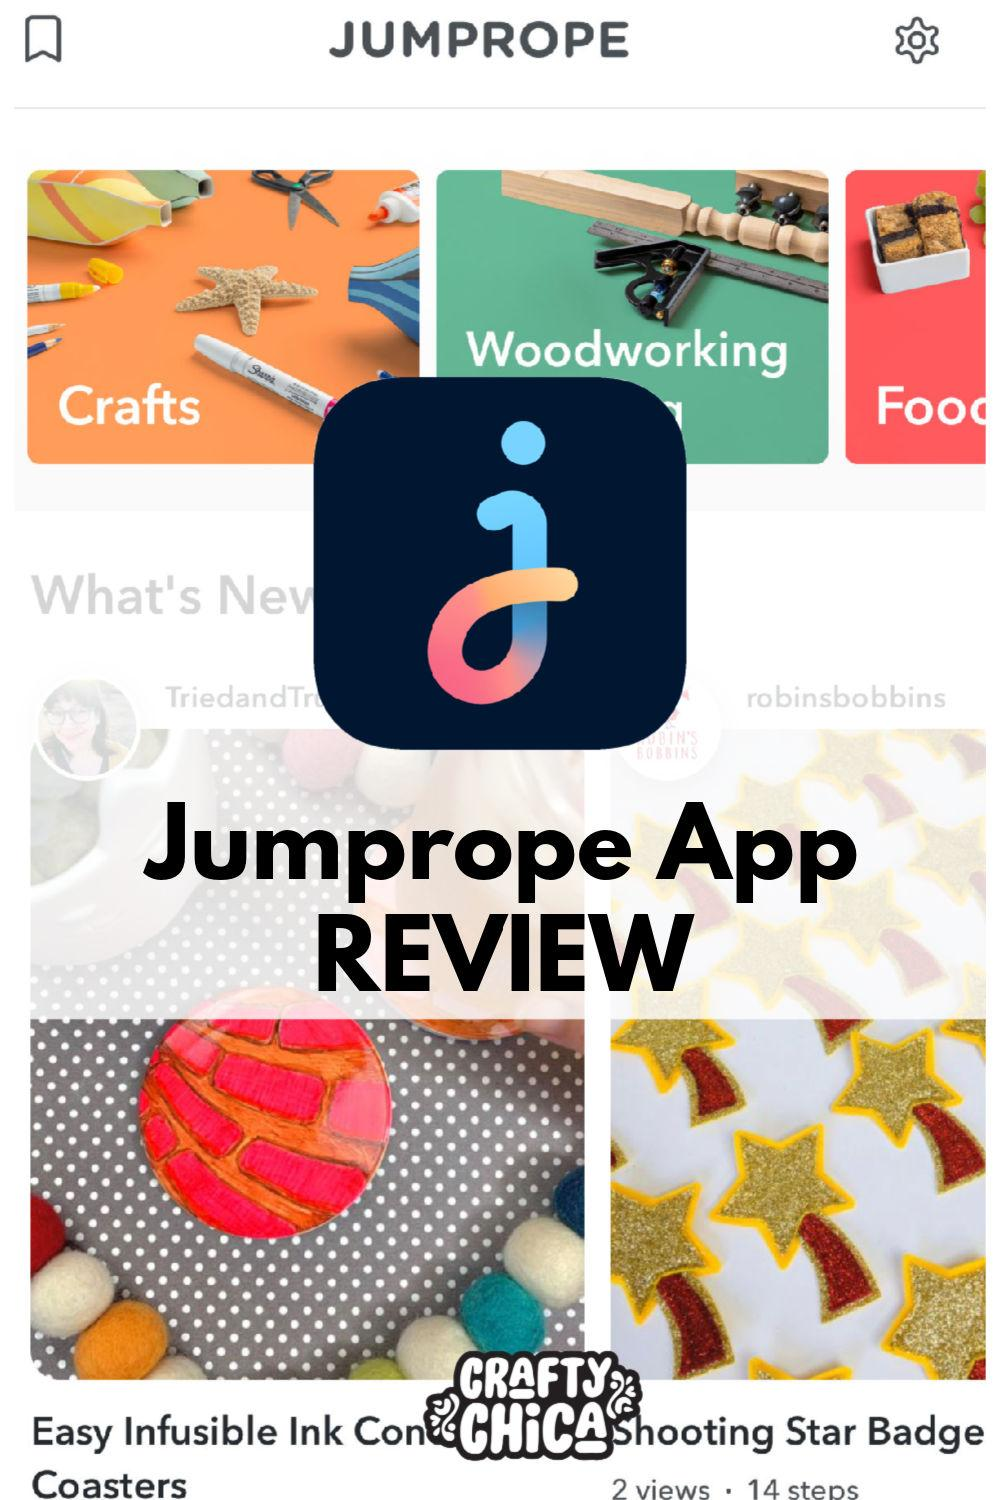 Jumprope app review